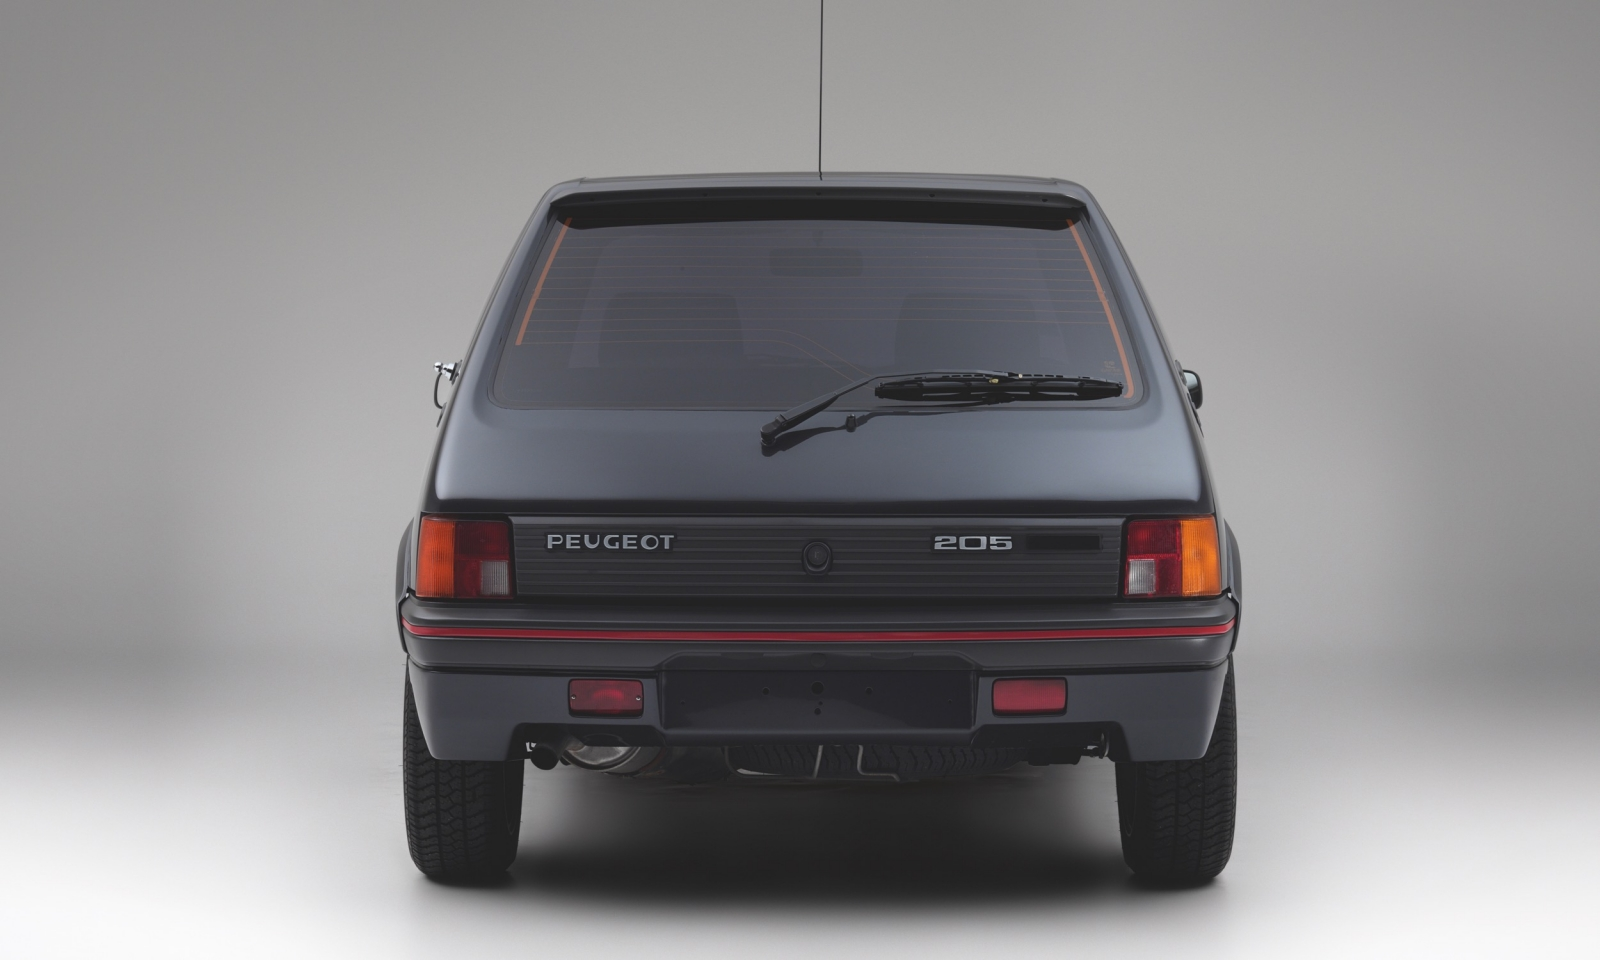 Armored_1990_Peugeot_205_GTI_0004